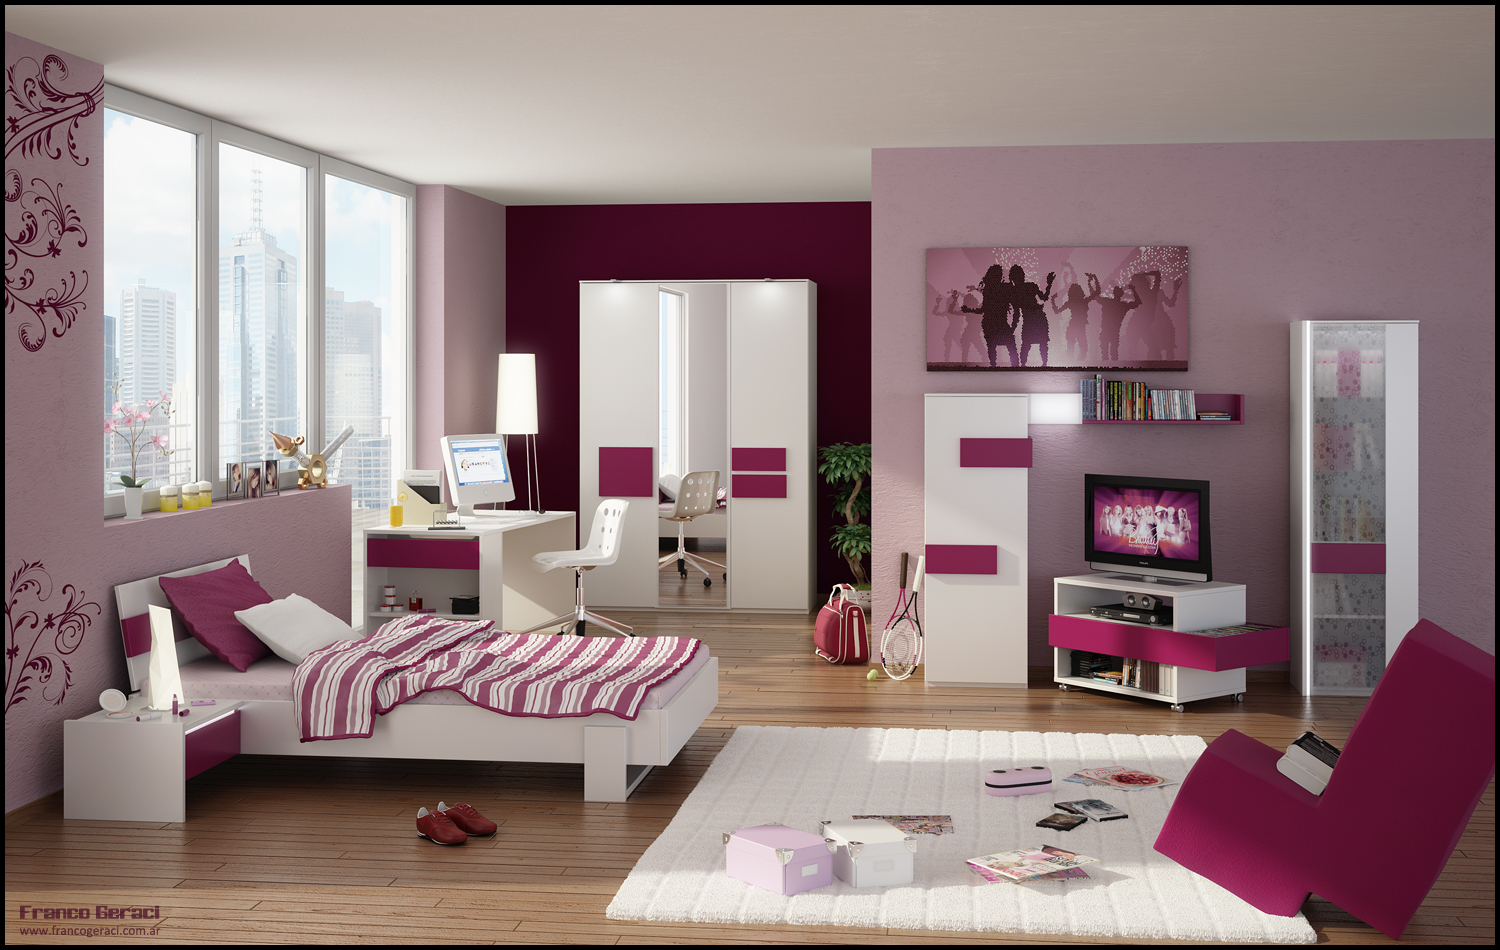 Teenage room designs Girls bedroom ideas pictures